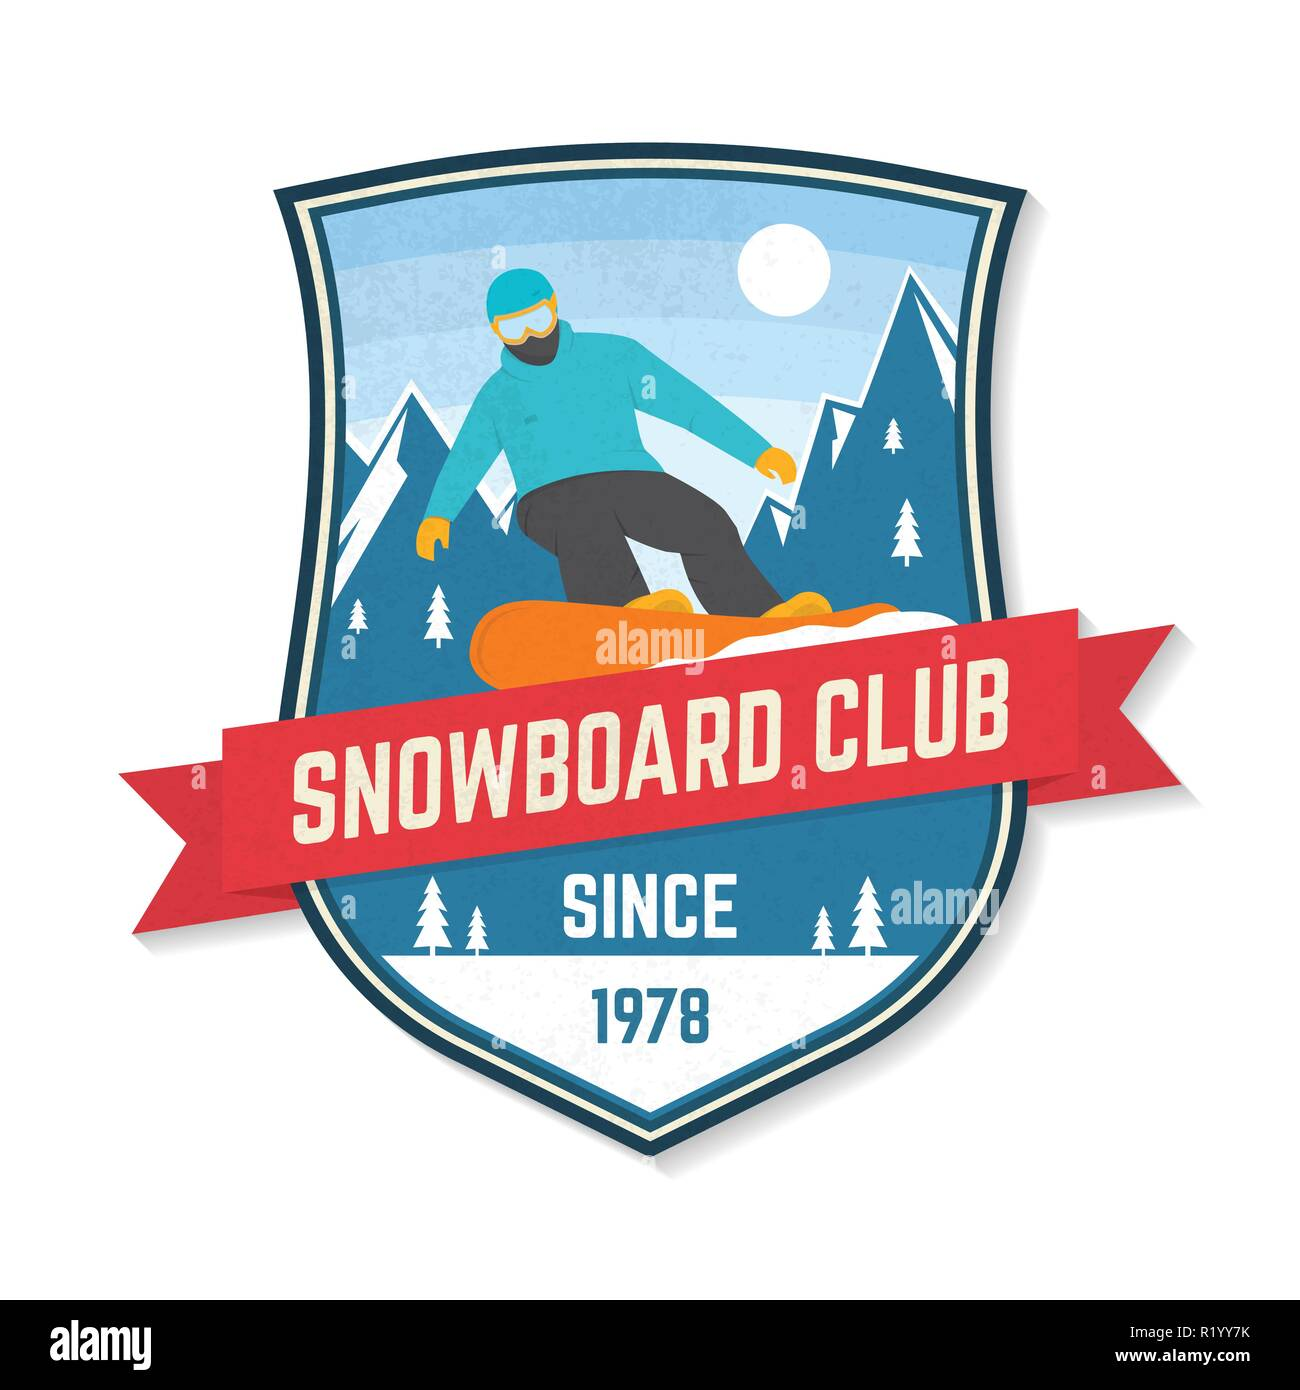 Snowboard Club. Vector illustration patch. Concept for shirt, print, stamp or tee. Design with snowboarder and mountain silhouette. Extreme winter sport. - Stock Image